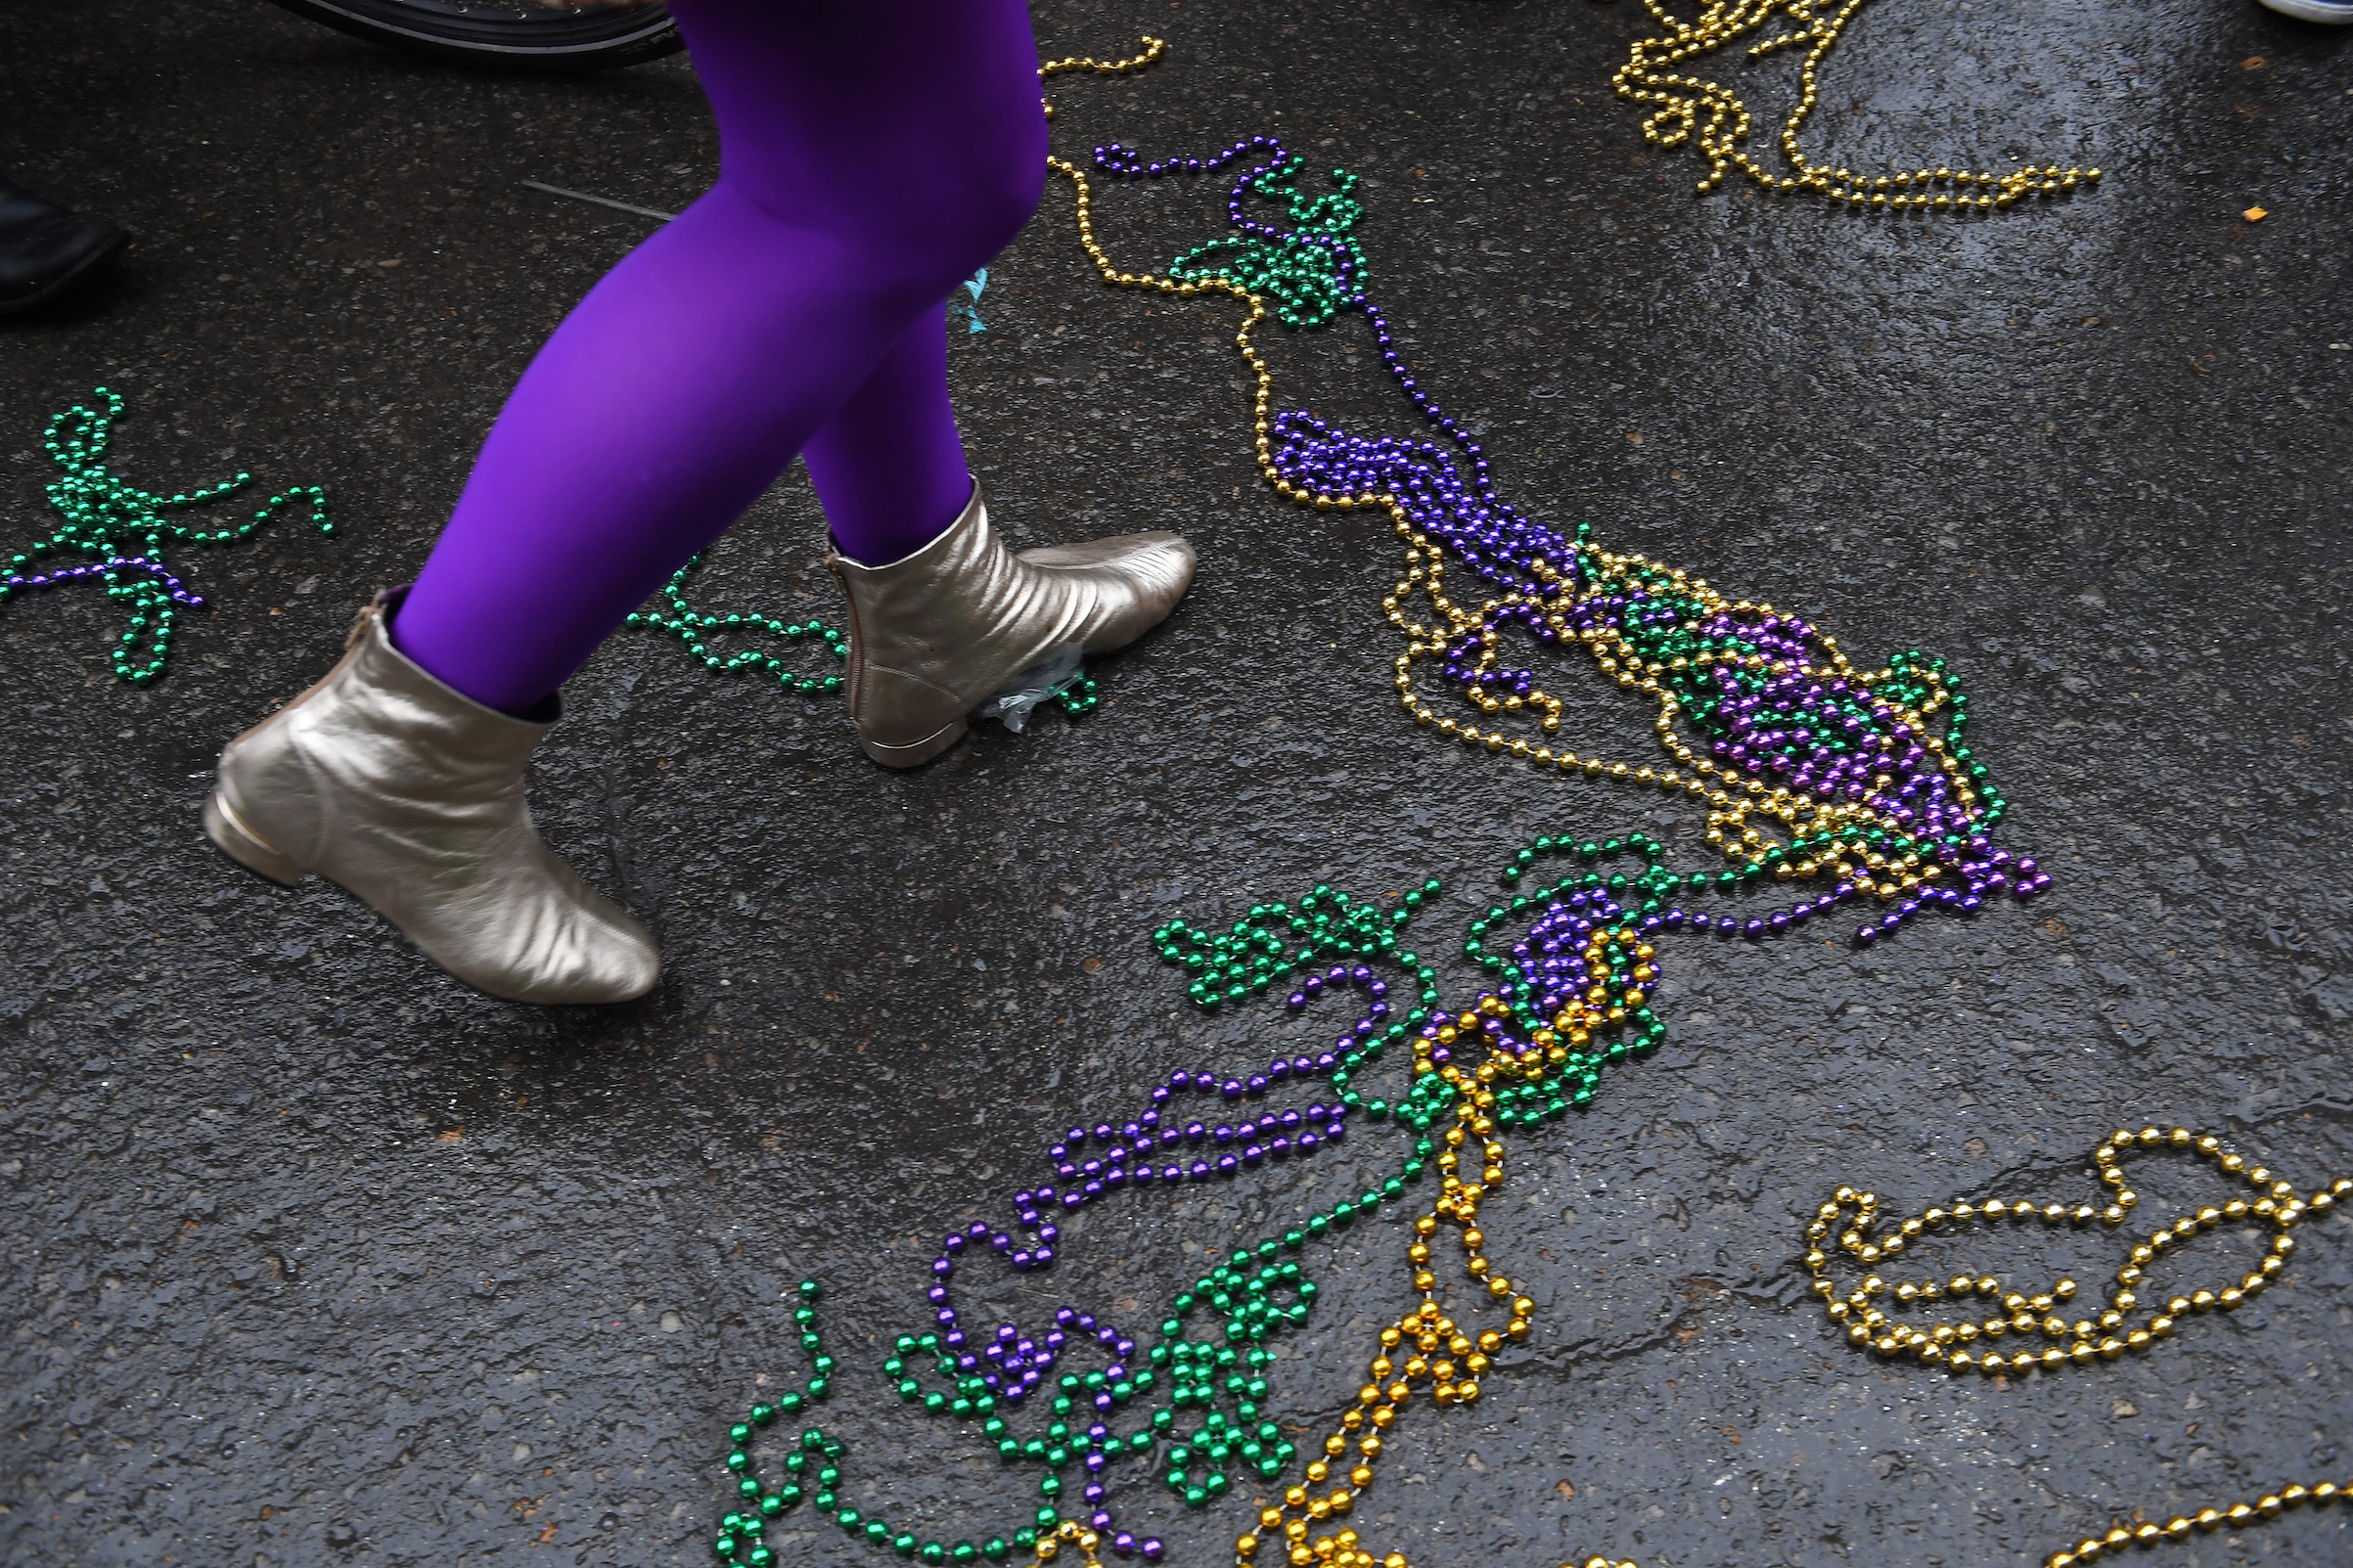 A person walks among beads during a parade on Feb. 17, 2017, in New Orleans.